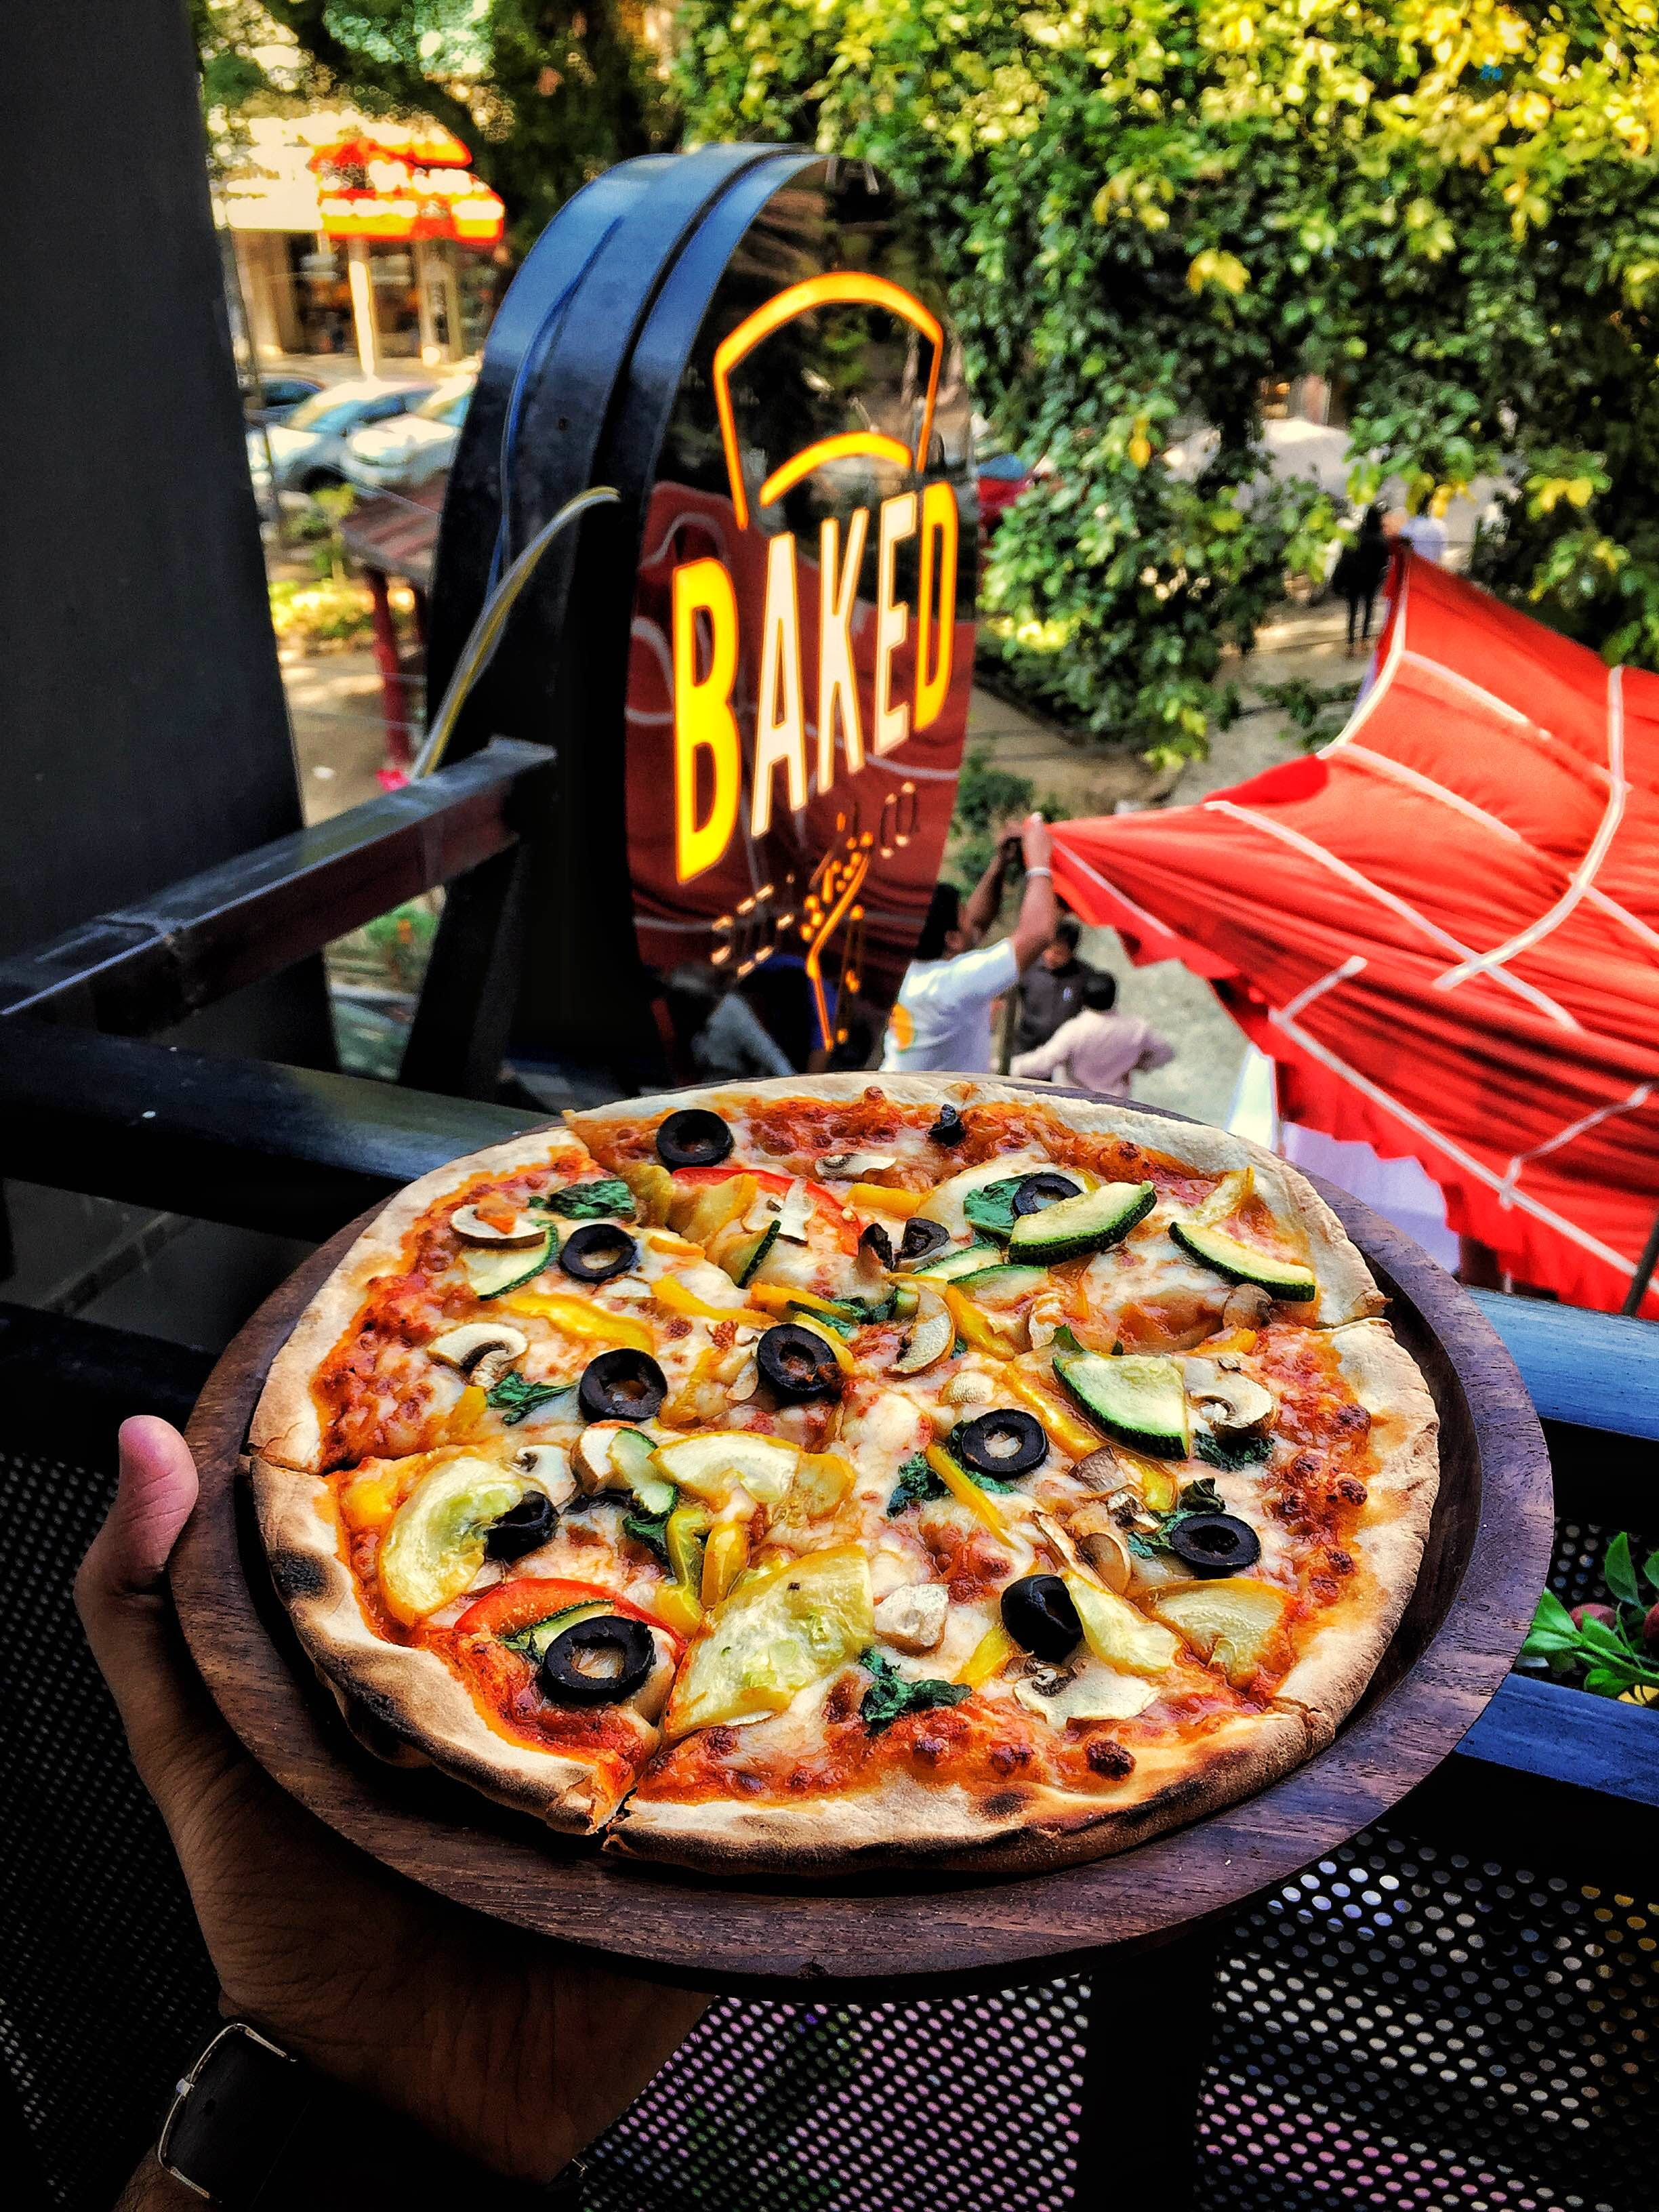 Baked Pizza And Co - An Outstanding New Comer In The Food Market